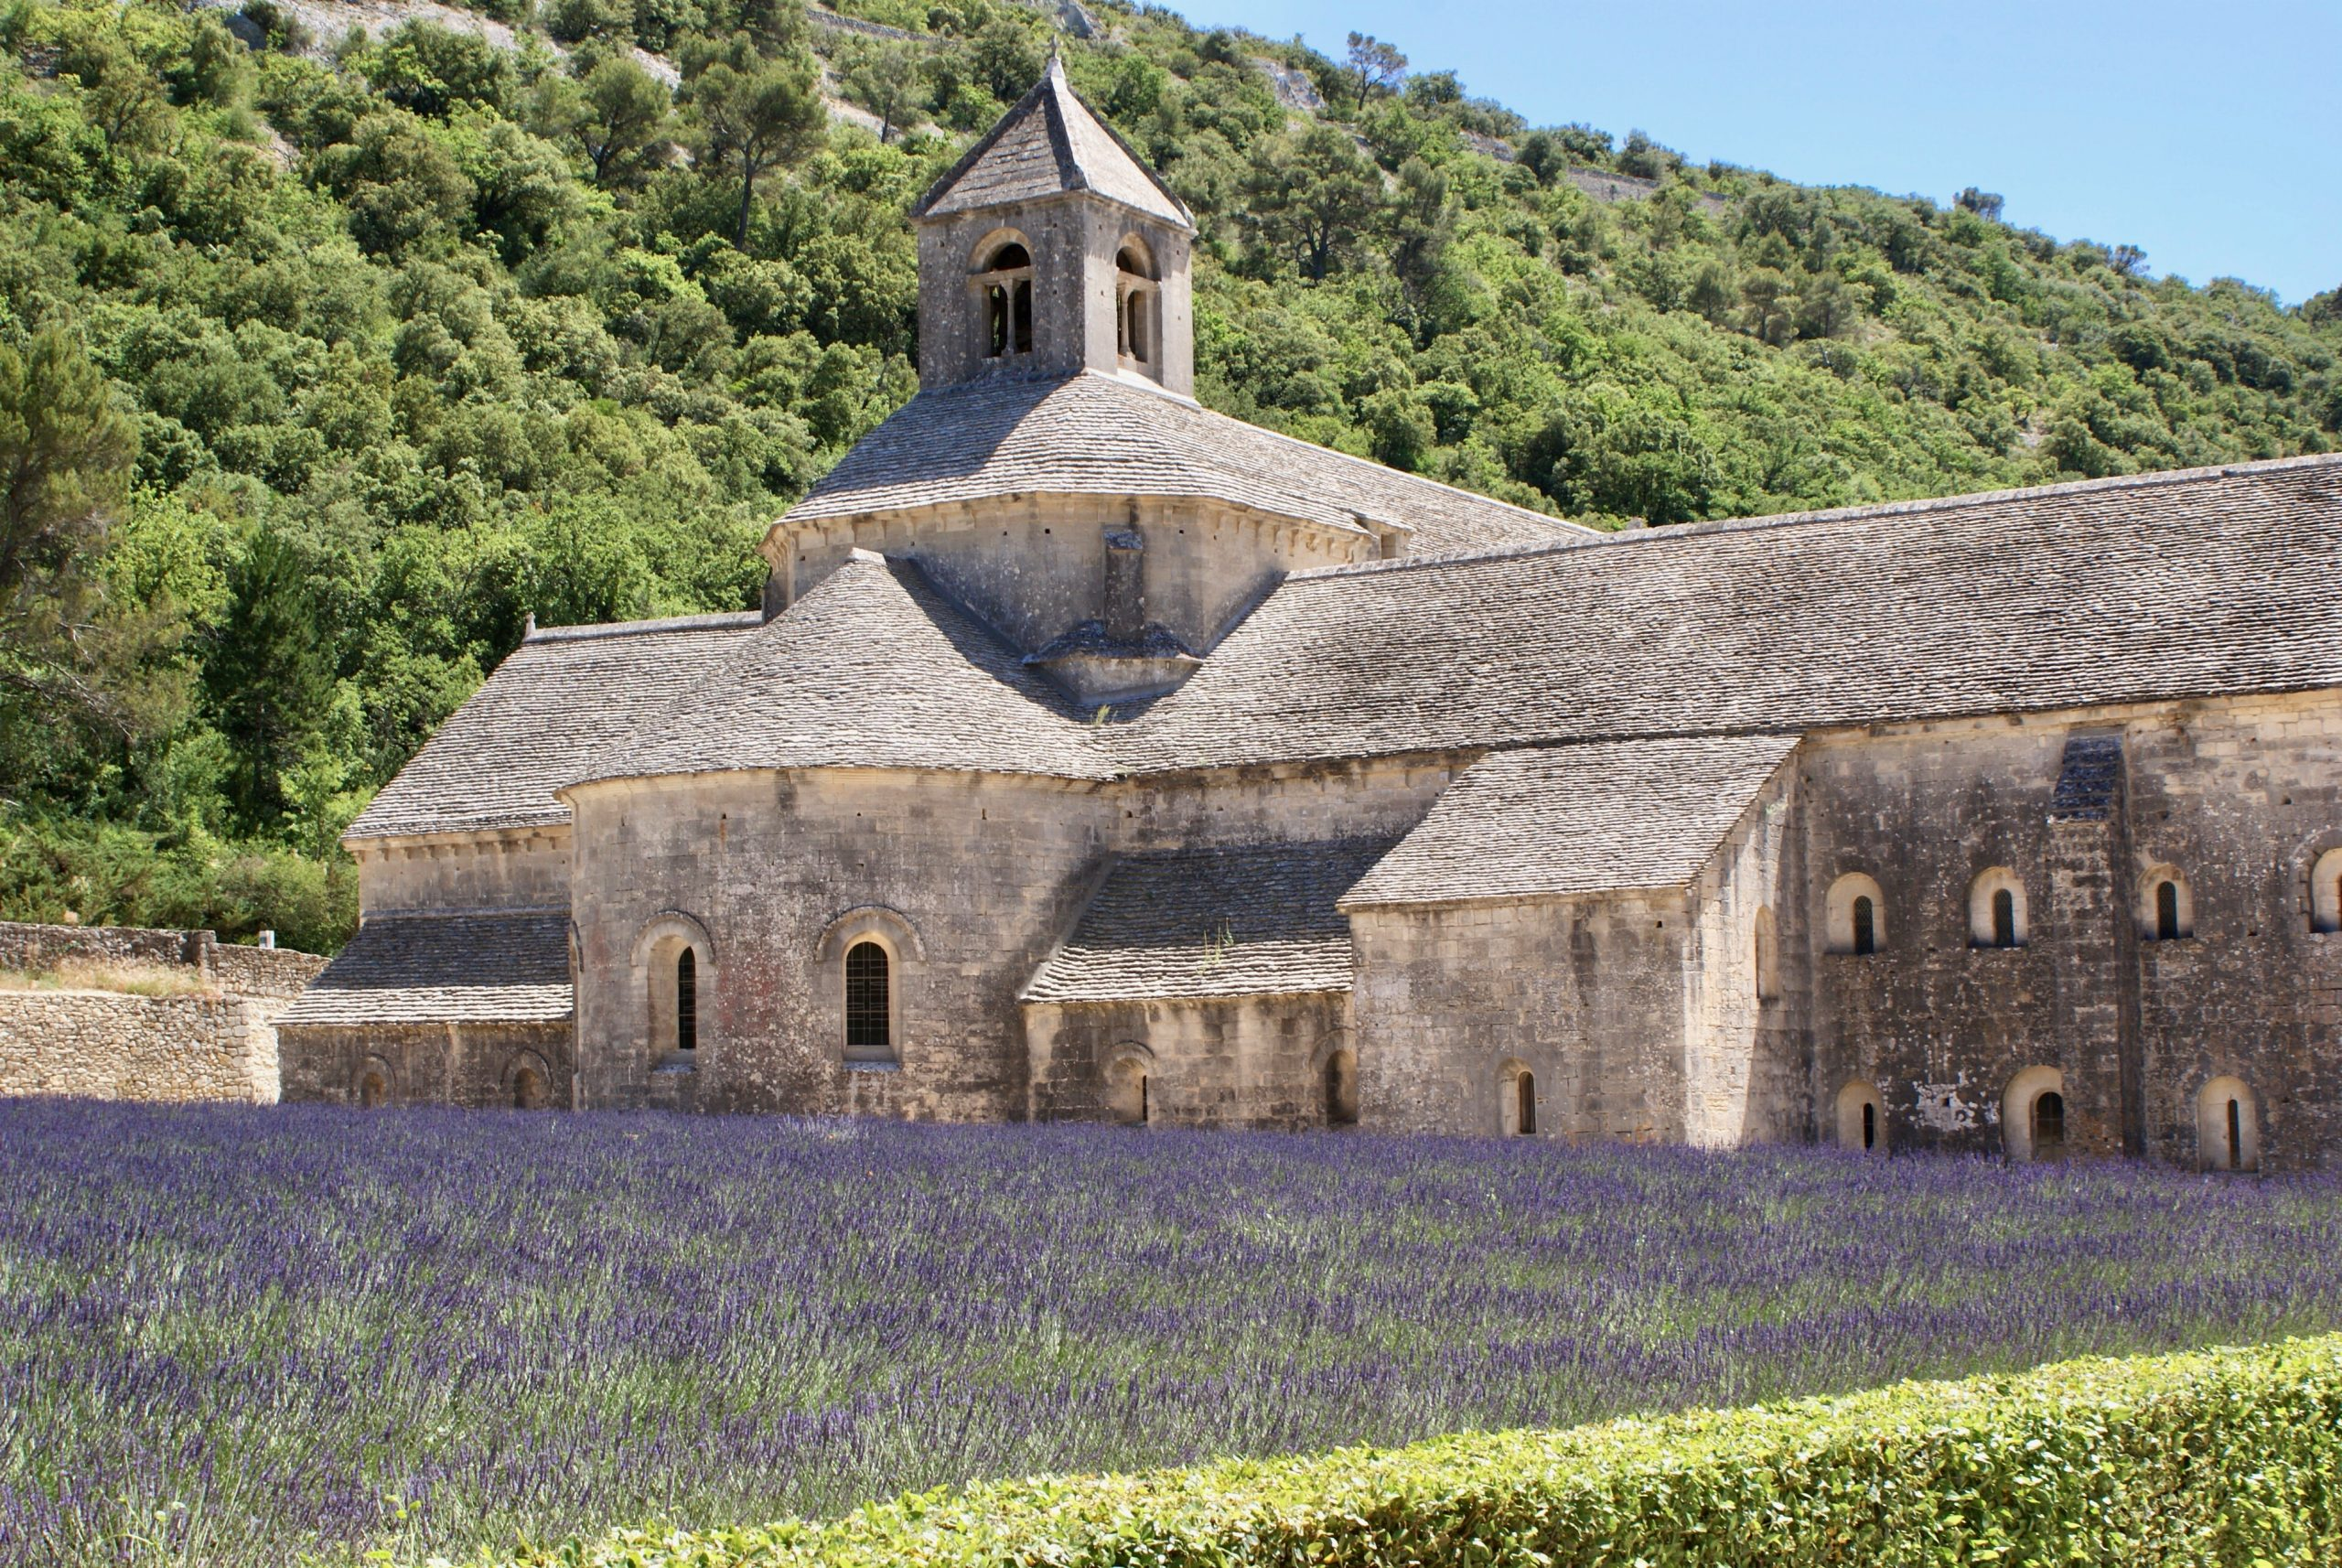 Sénanque Abbey is famous for lavender fields in the South of France